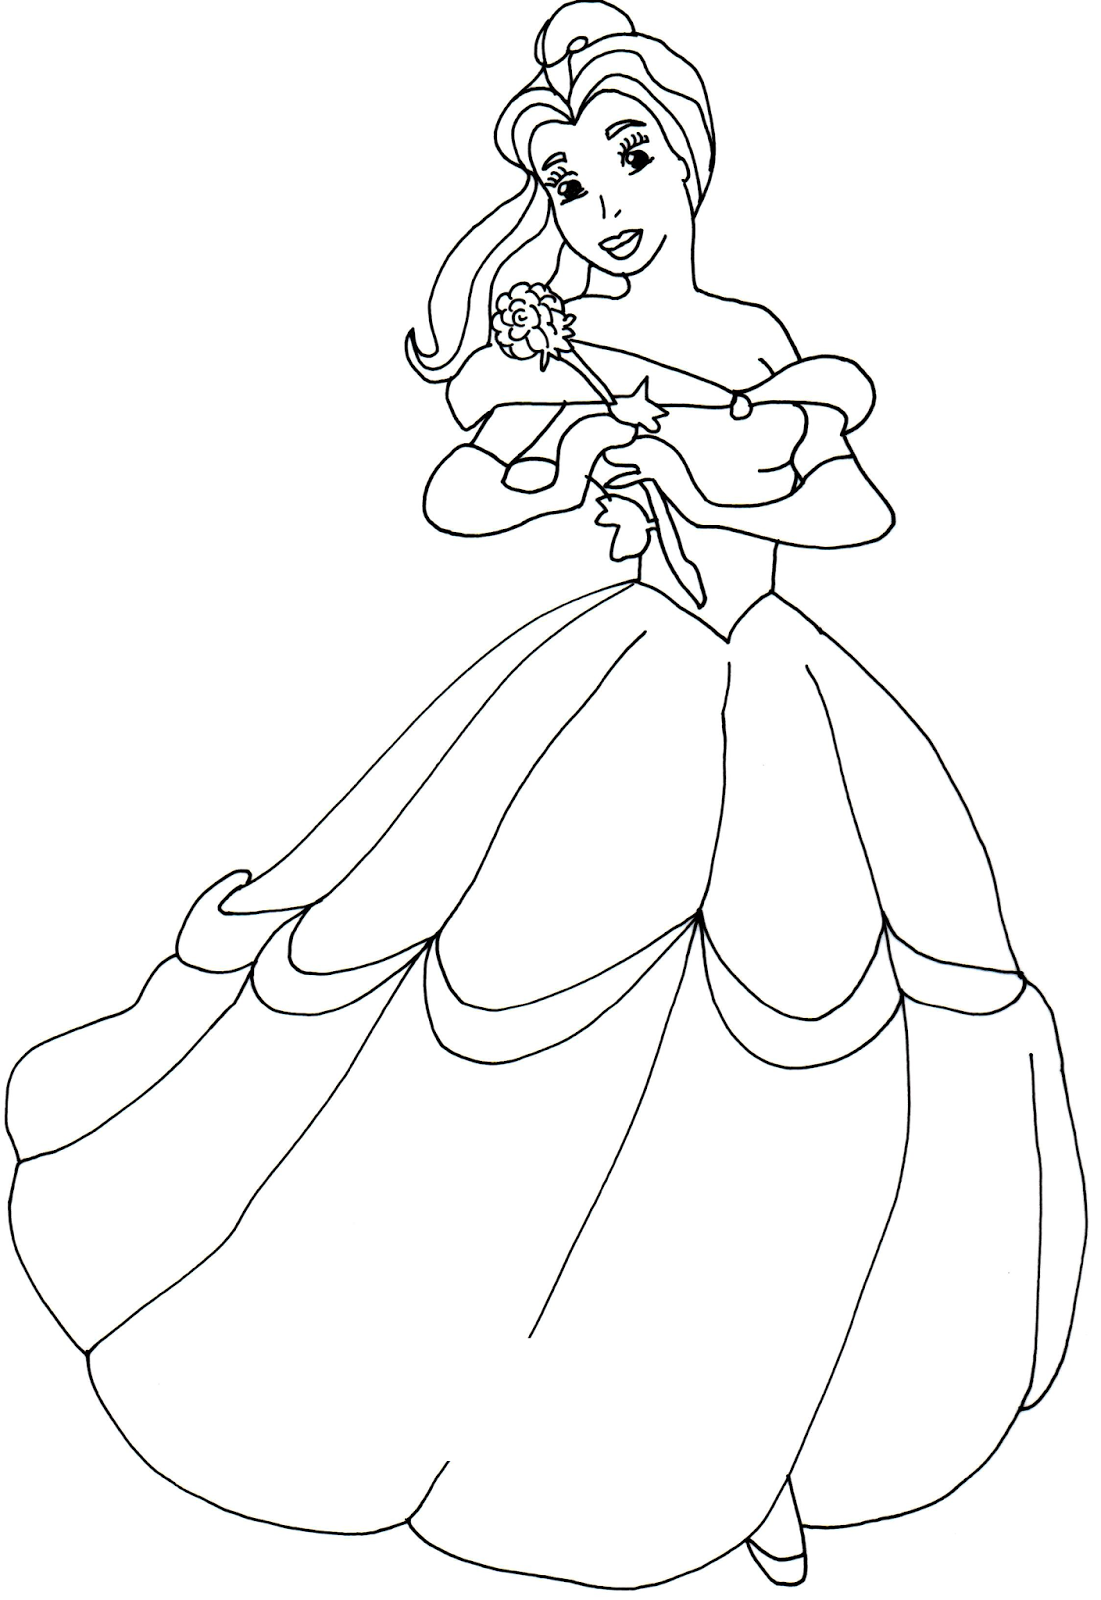 Sofia The First Coloring Pages: Princess Belle - Sofia the ...